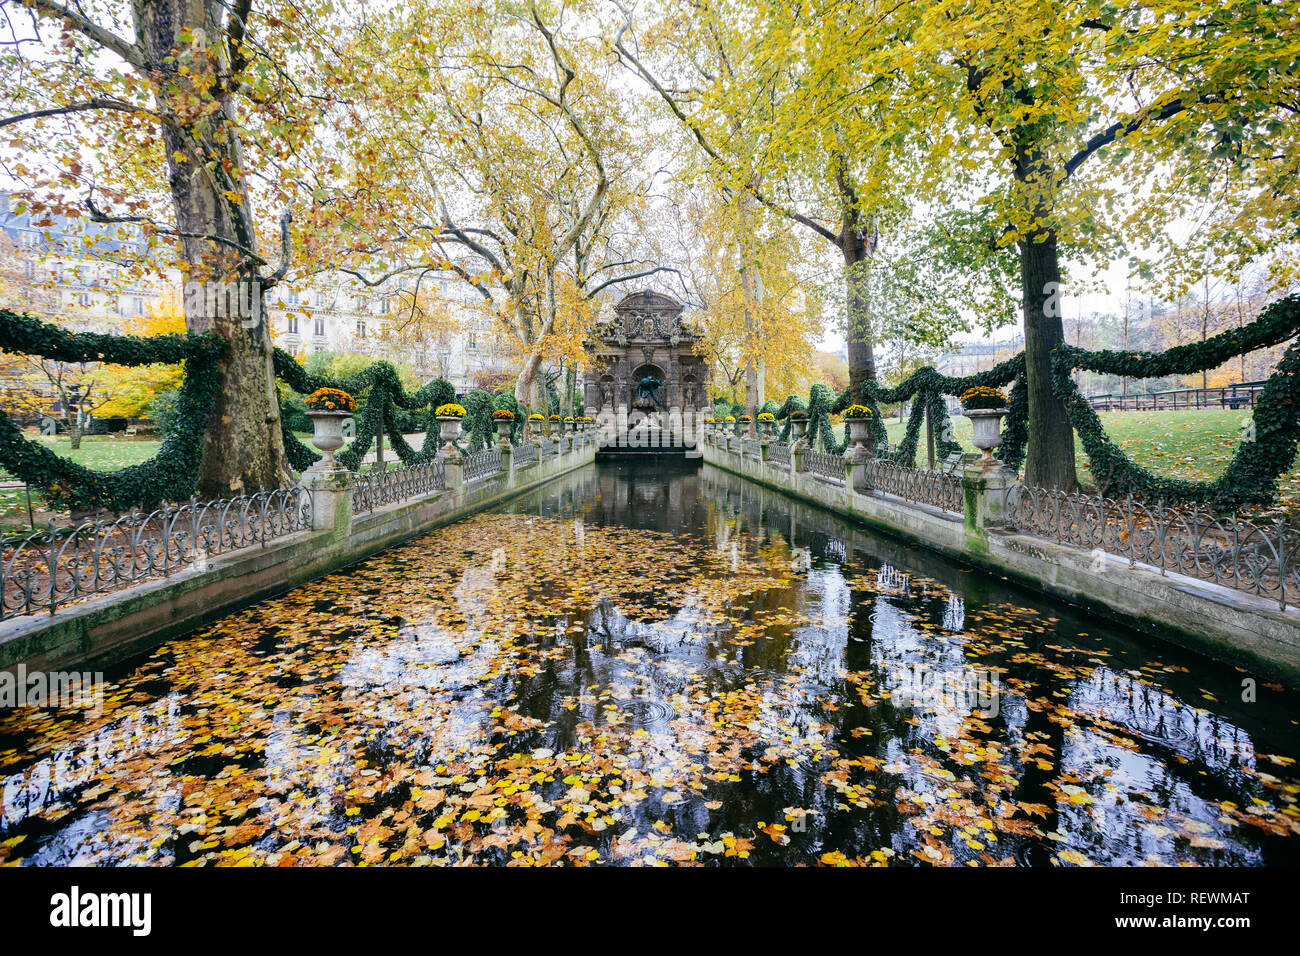 Paris (France) - The Medici Fountain is a monumental fountain in the Jardin du Luxembourg Stock Photo